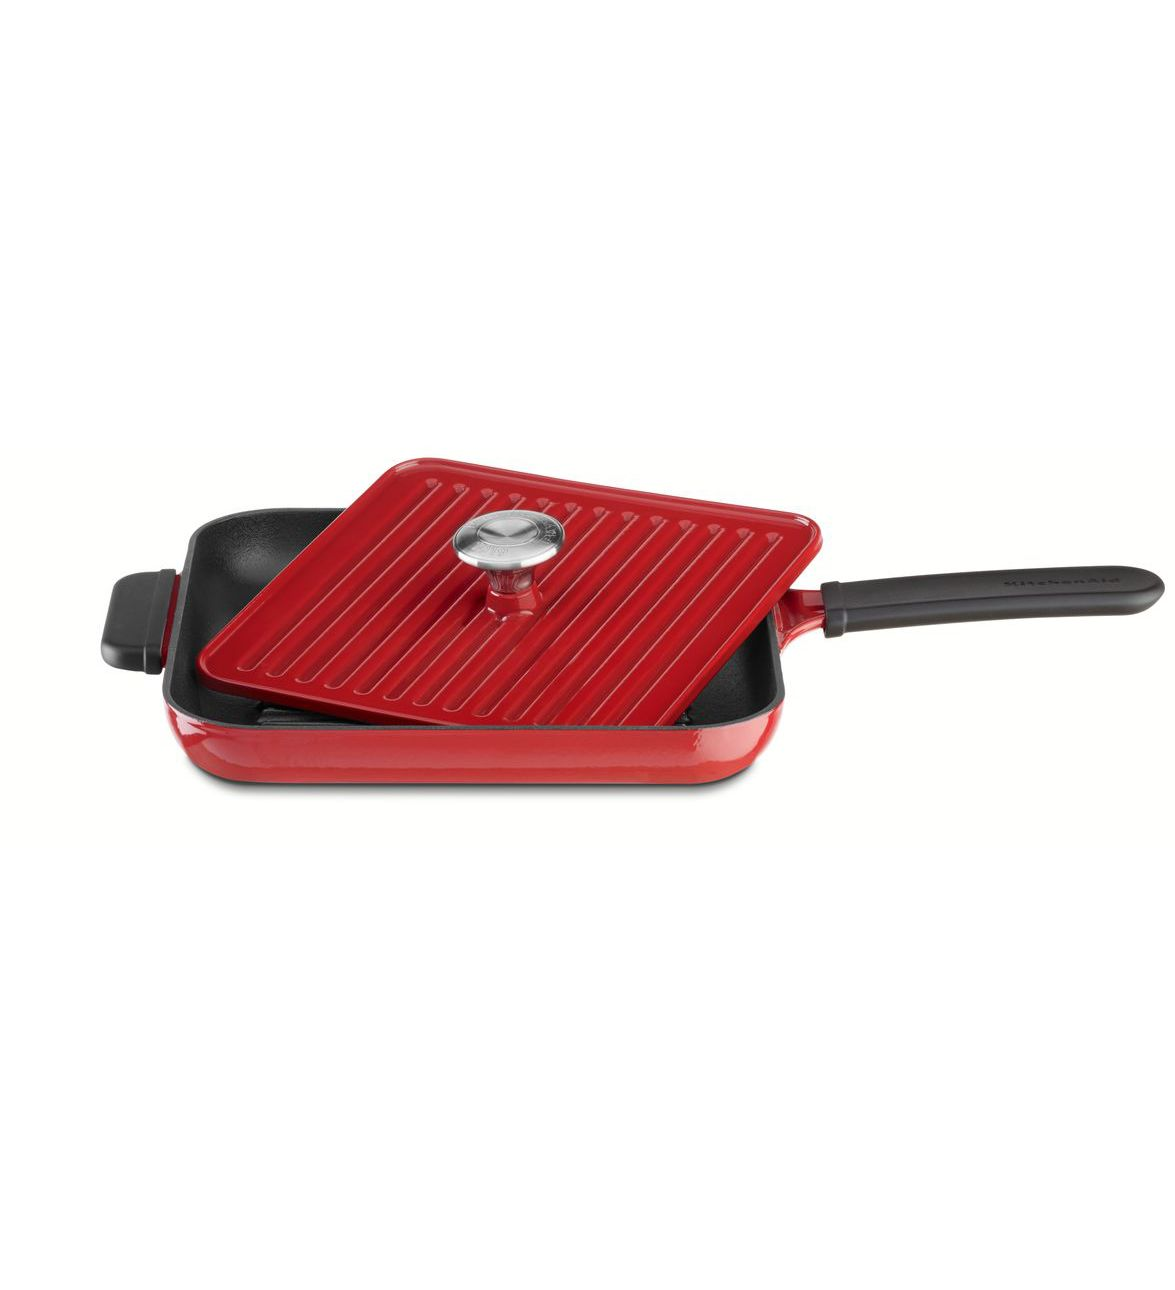 KitchenAid Grill and Panini Press